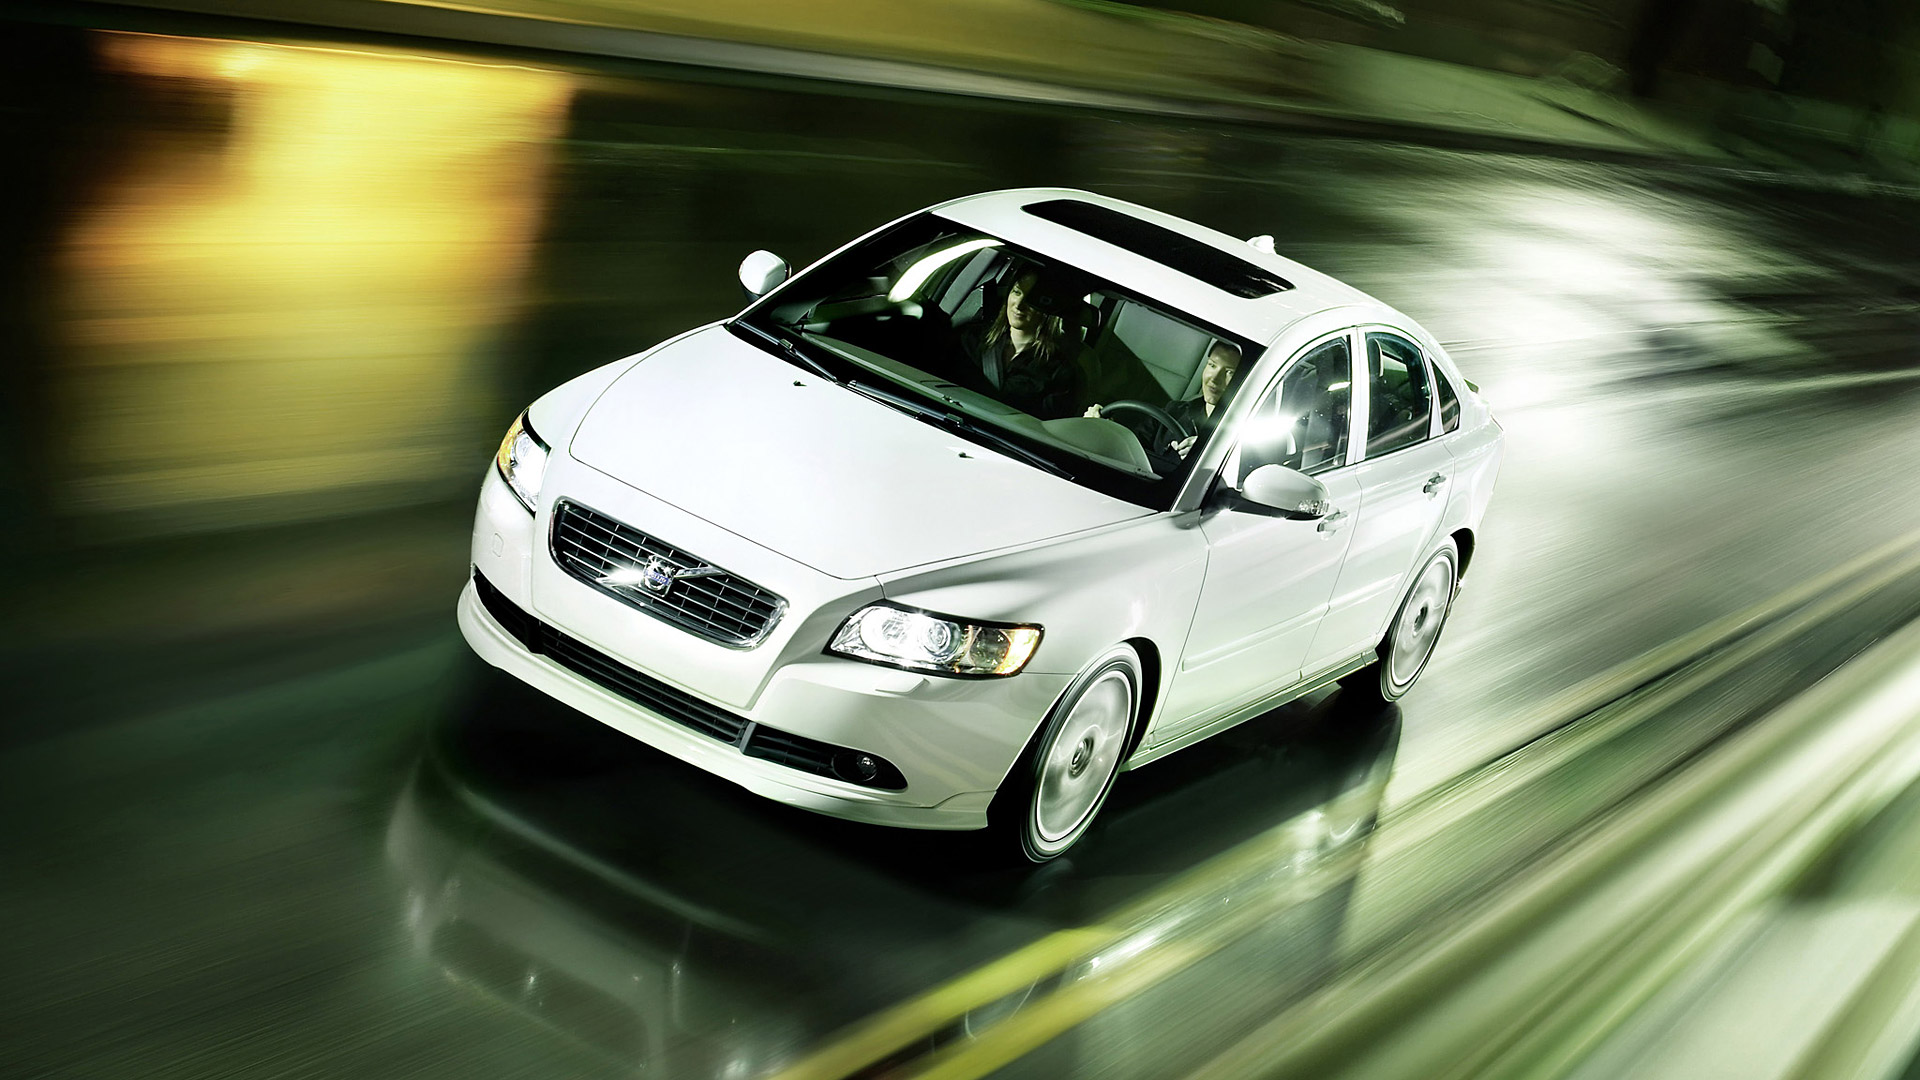 2007 Volvo S40 T5 Wallpapers HD Images   WSupercars 1920x1080